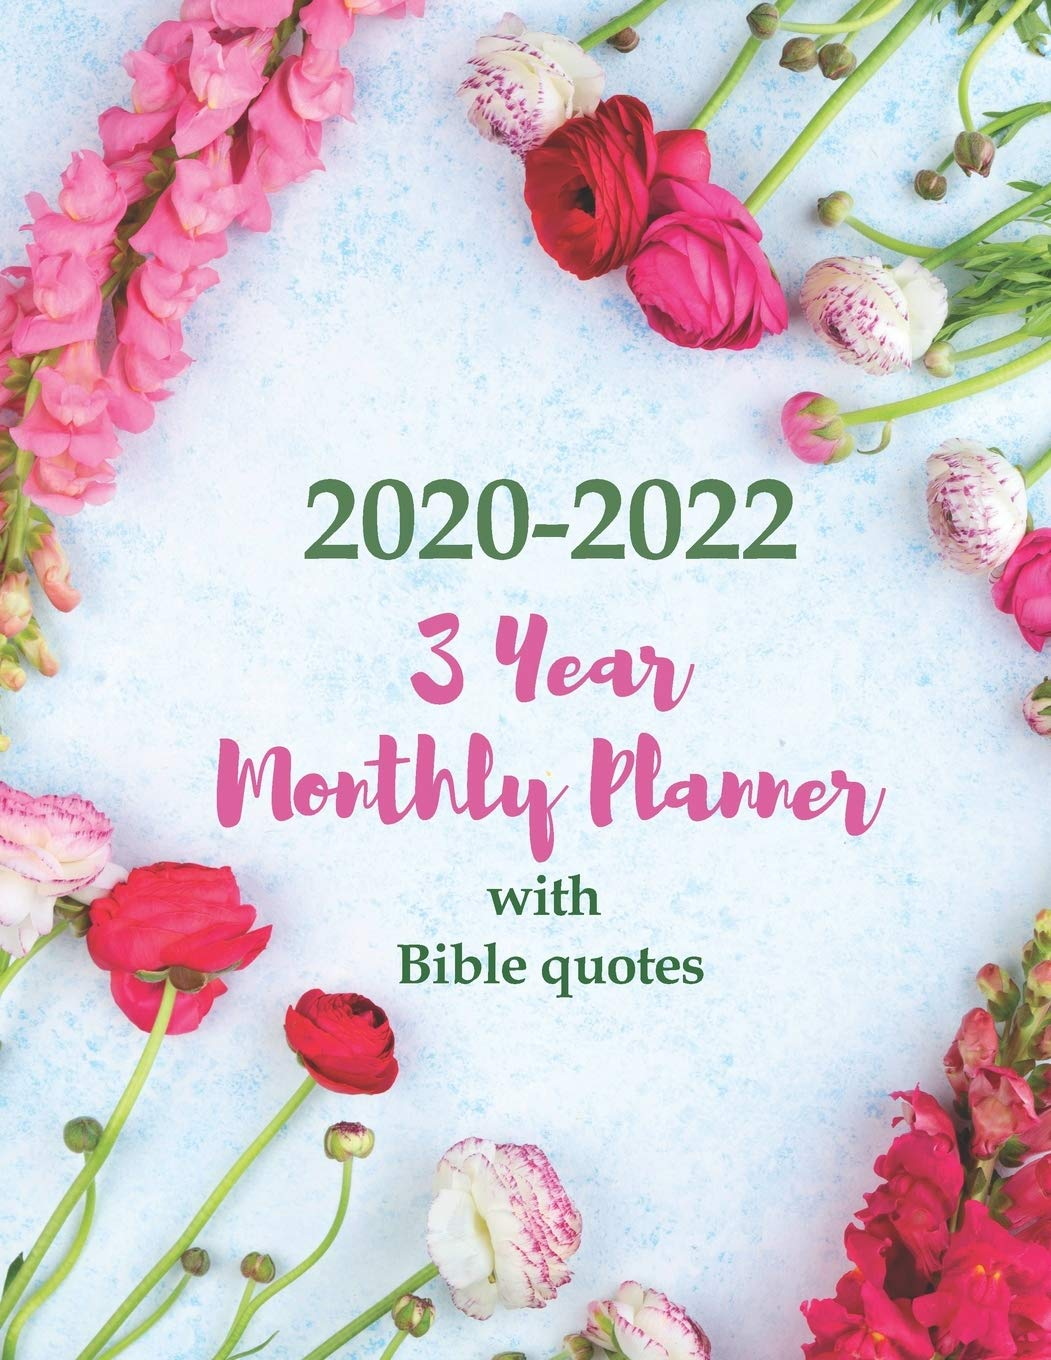 Christian Calendar 2022.Buy 2020 2022 3 Year Monthly Planner With Bible Quotes Large Calendar Organizer For Christian Women 36 Months Agenda One Bible Verse Per Page Diary Letter Sized 8 5 X 11 Inch 21 59 X